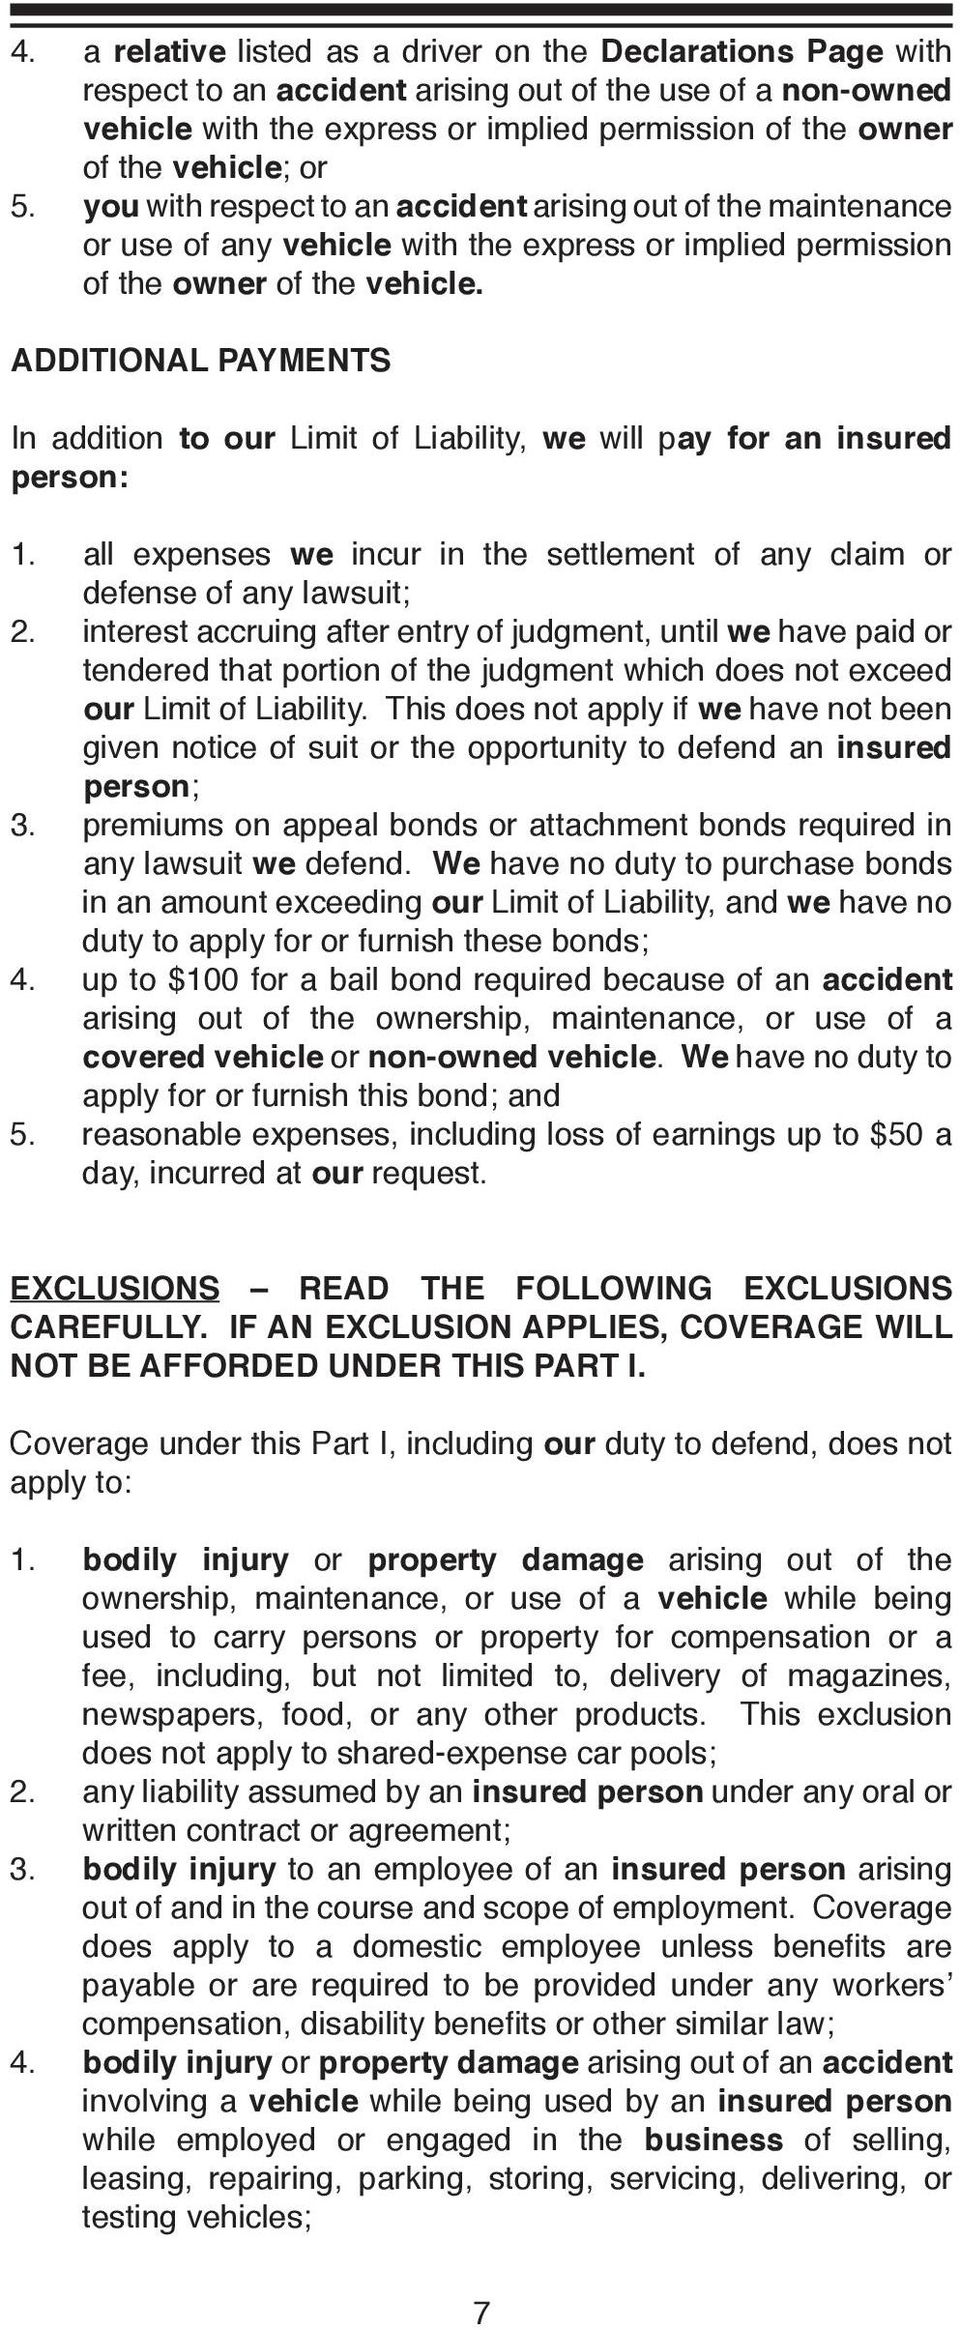 ADDITIONAL PAYMENTS In addition to our Limit of Liability, we will pay for an insured person: 1. all expenses we incur in the settlement of any claim or defense of any lawsuit; 2.